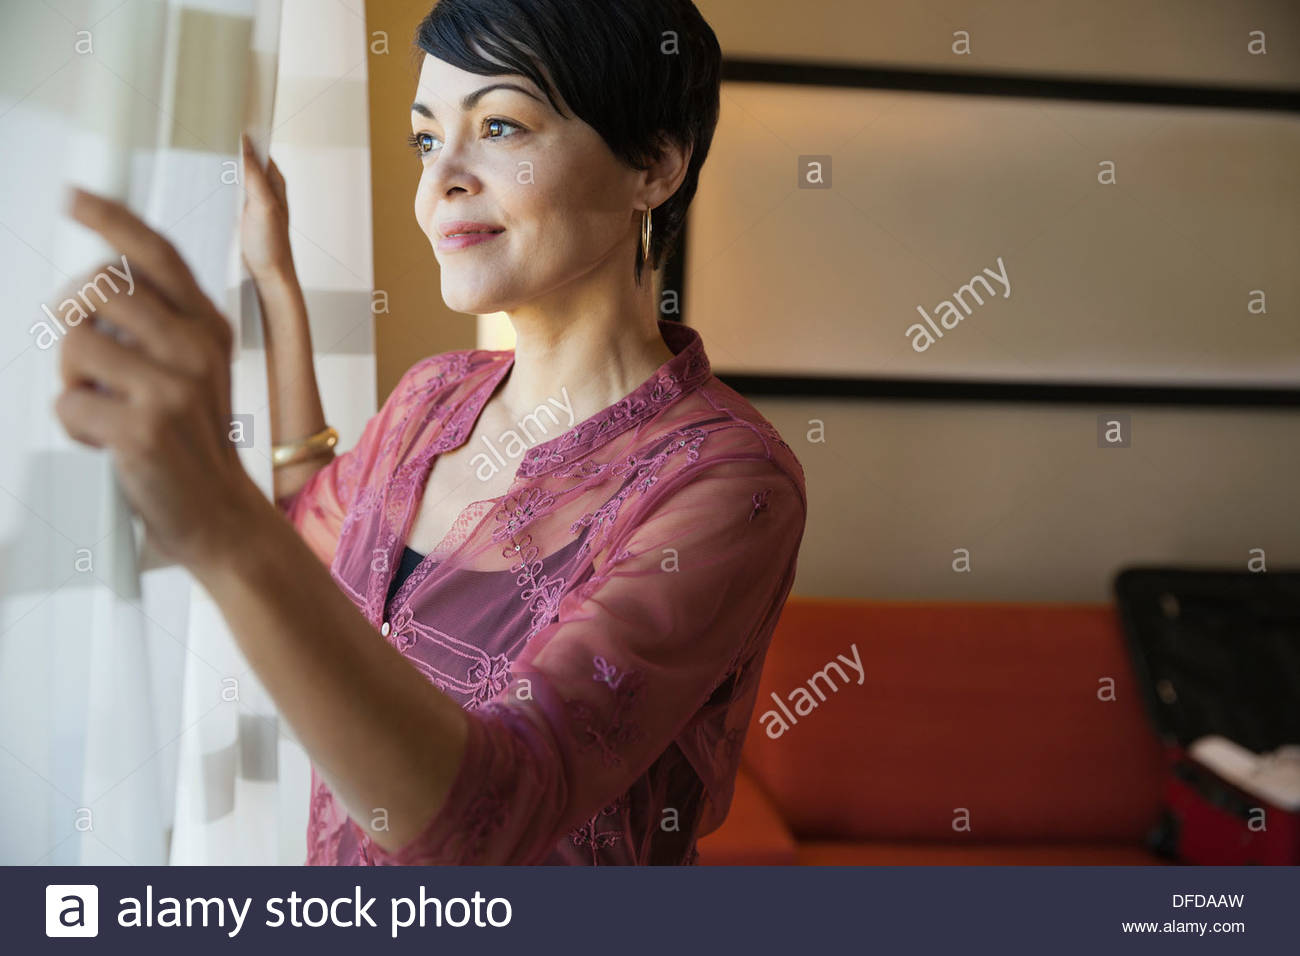 Businesswoman looking out hotel room window - Stock Image